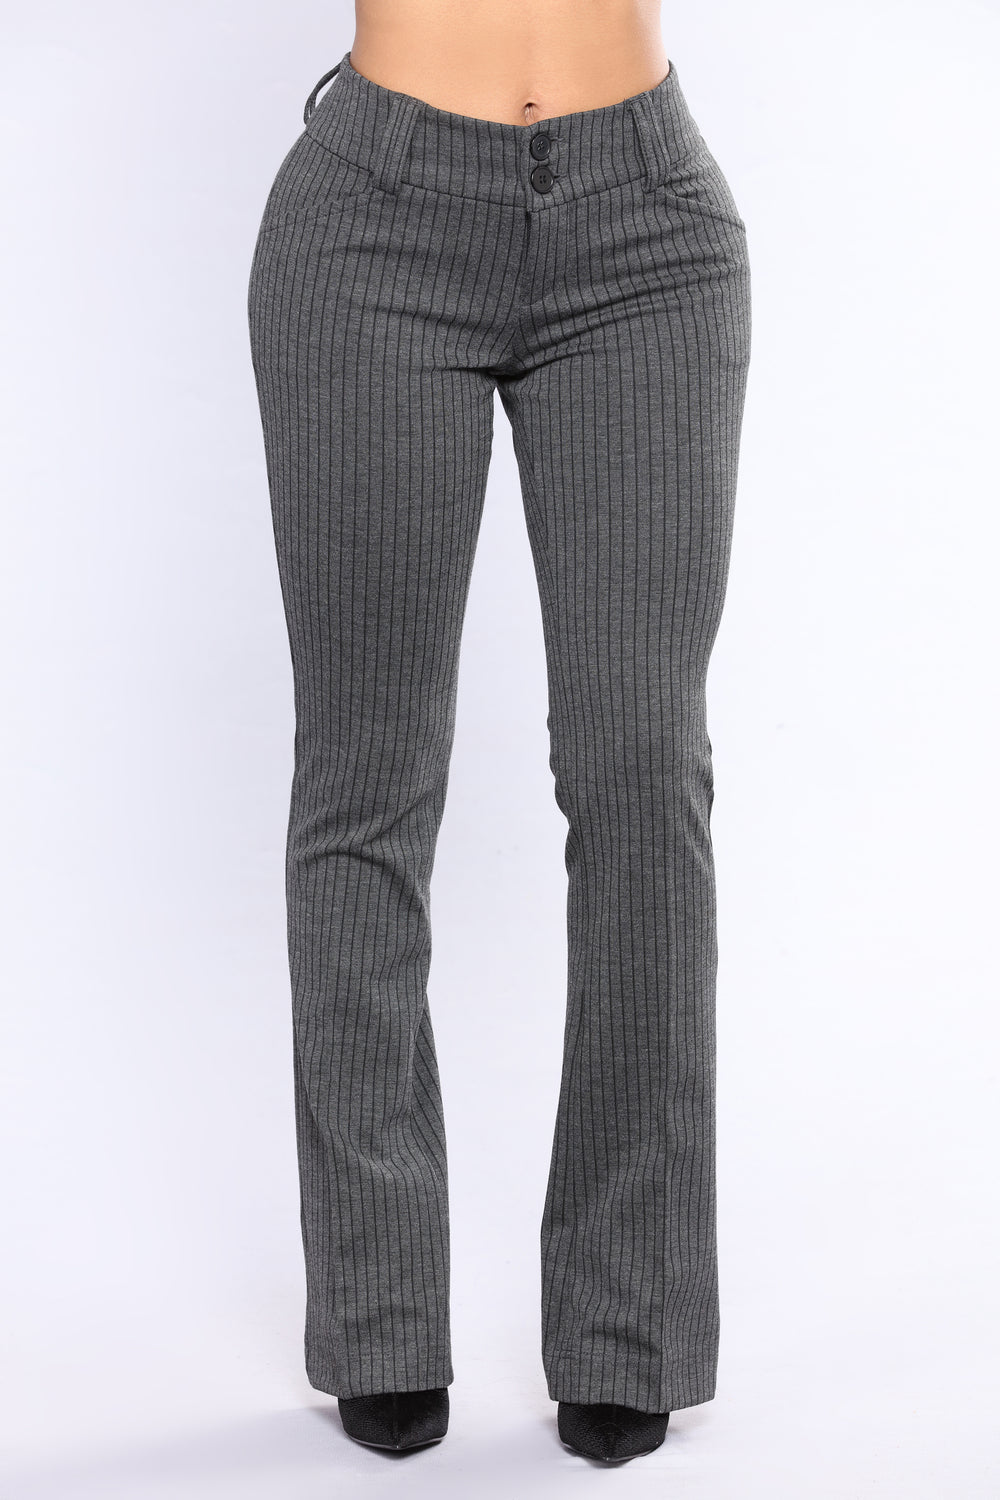 Donella Pants - Charcoal